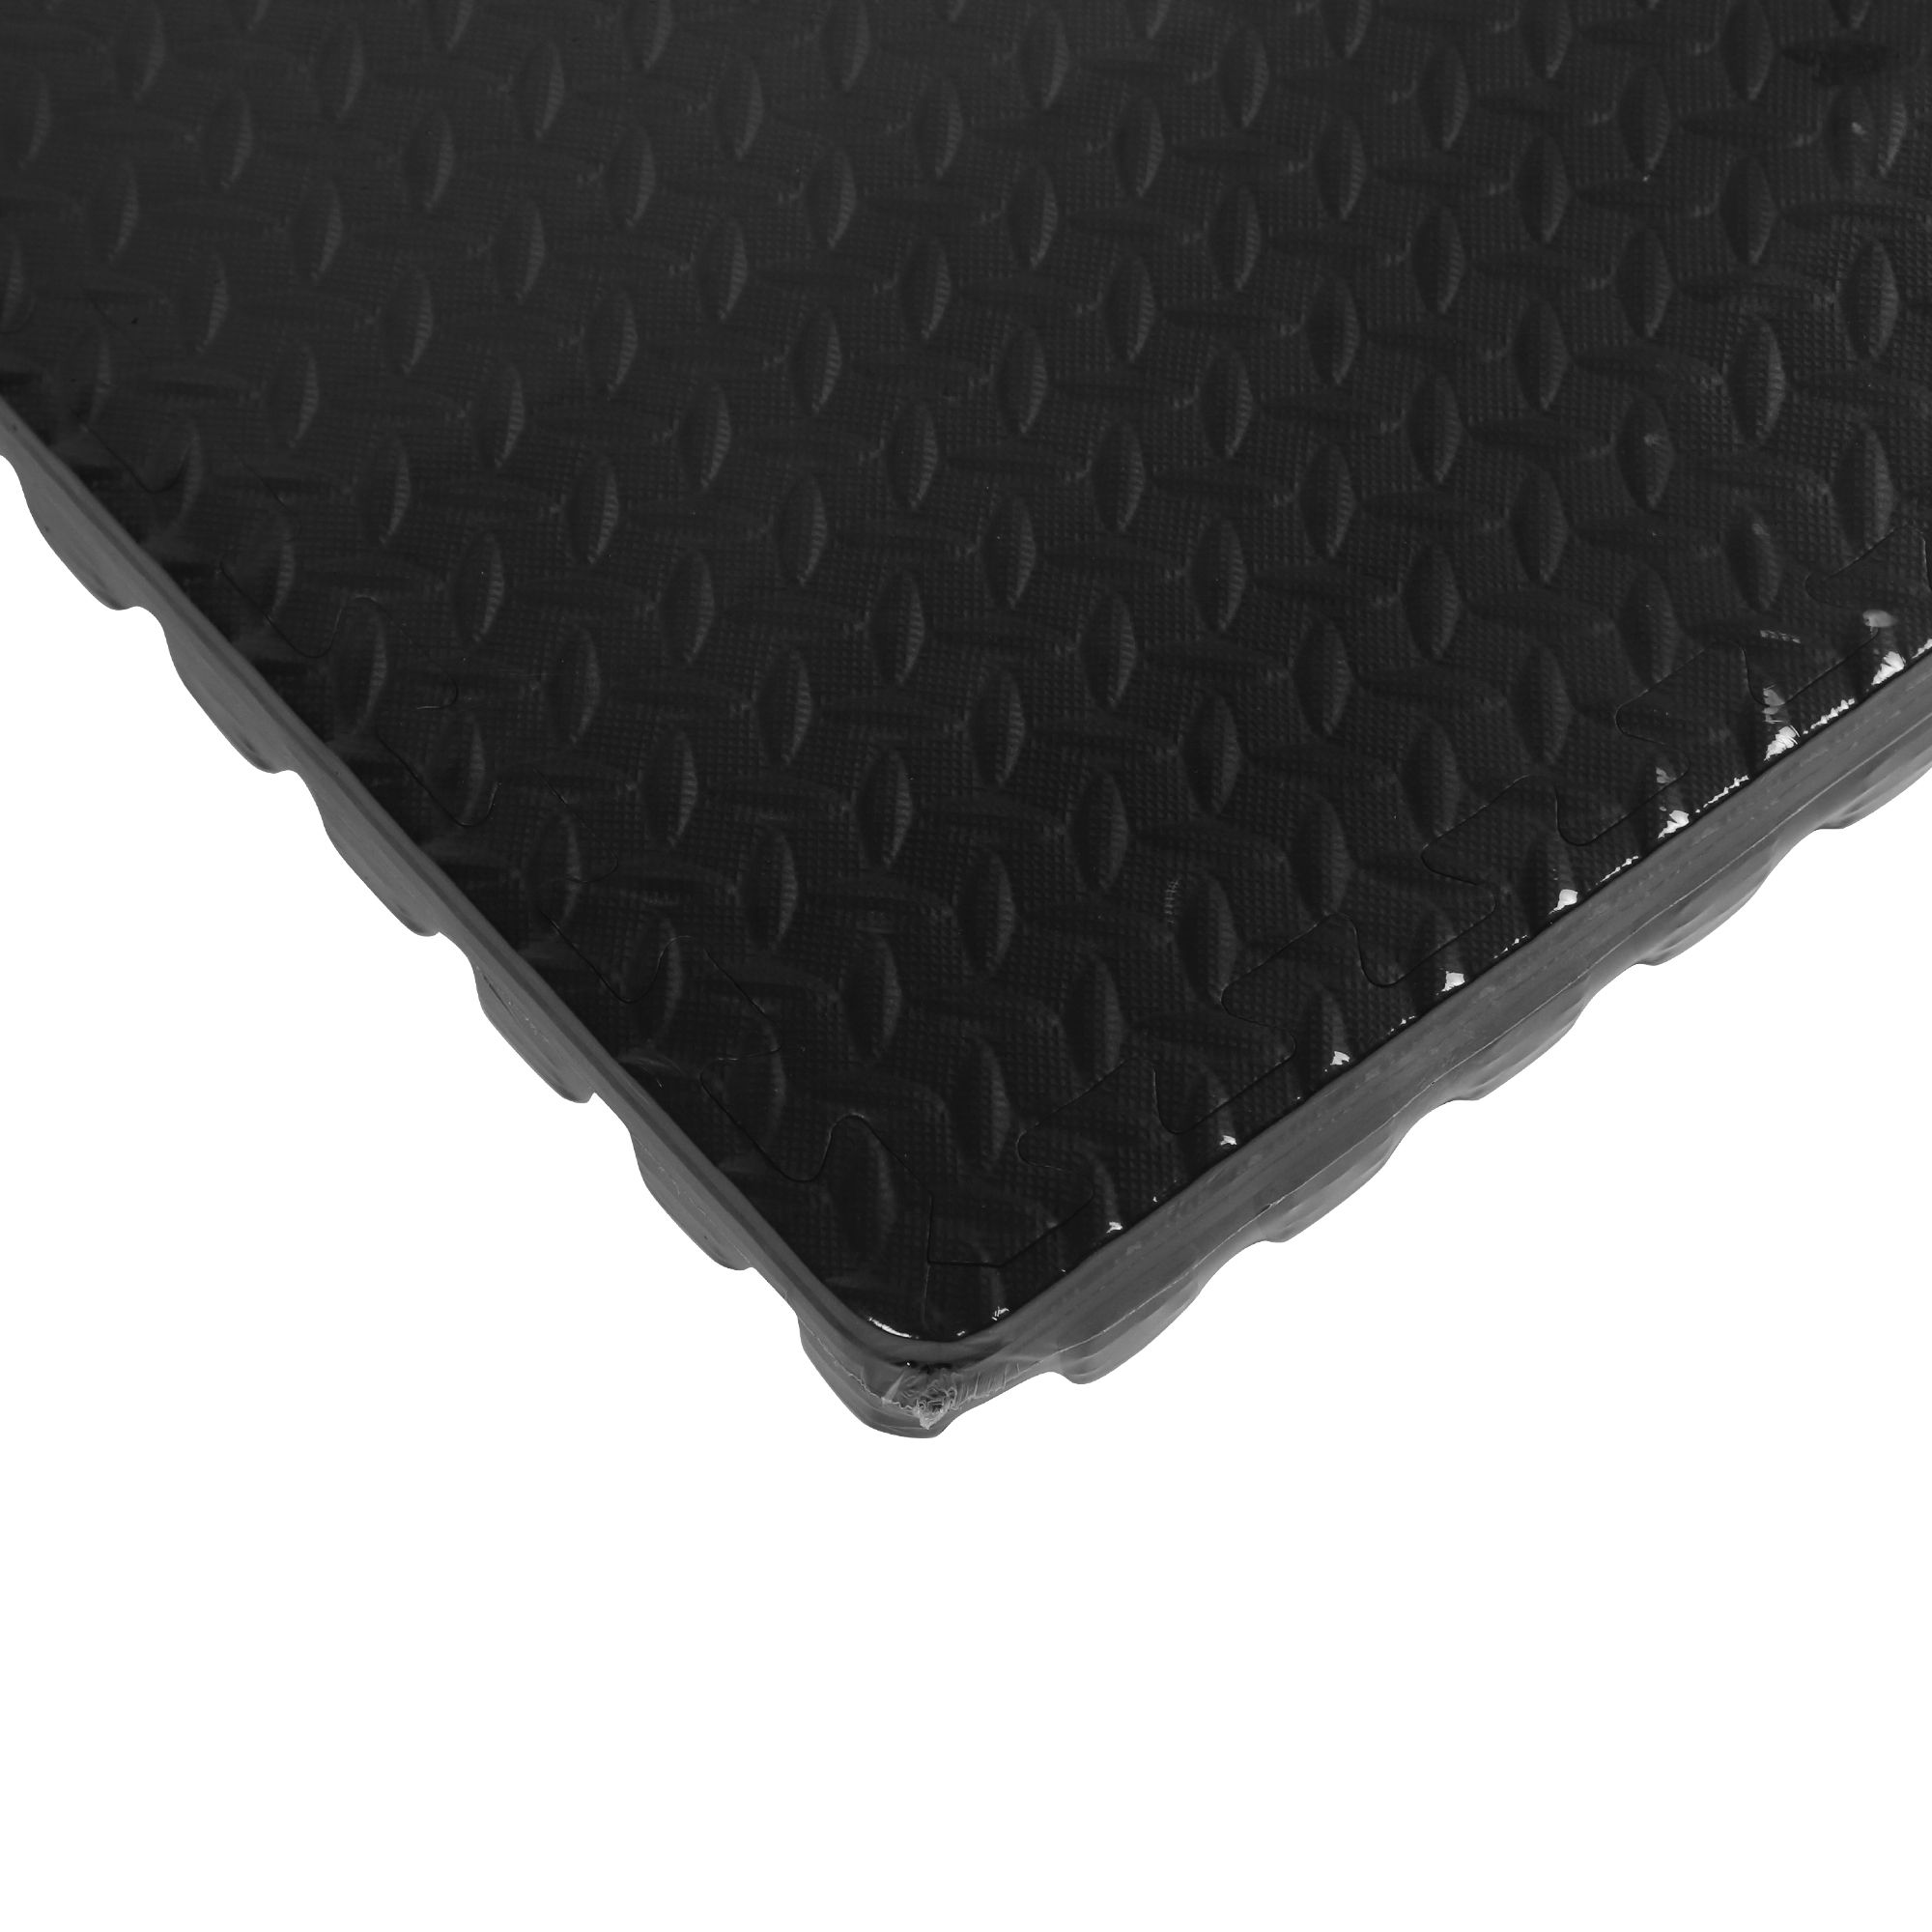 corner plasti pvc tuff mats floor product ramp lock tile interlocking garage floors flooring